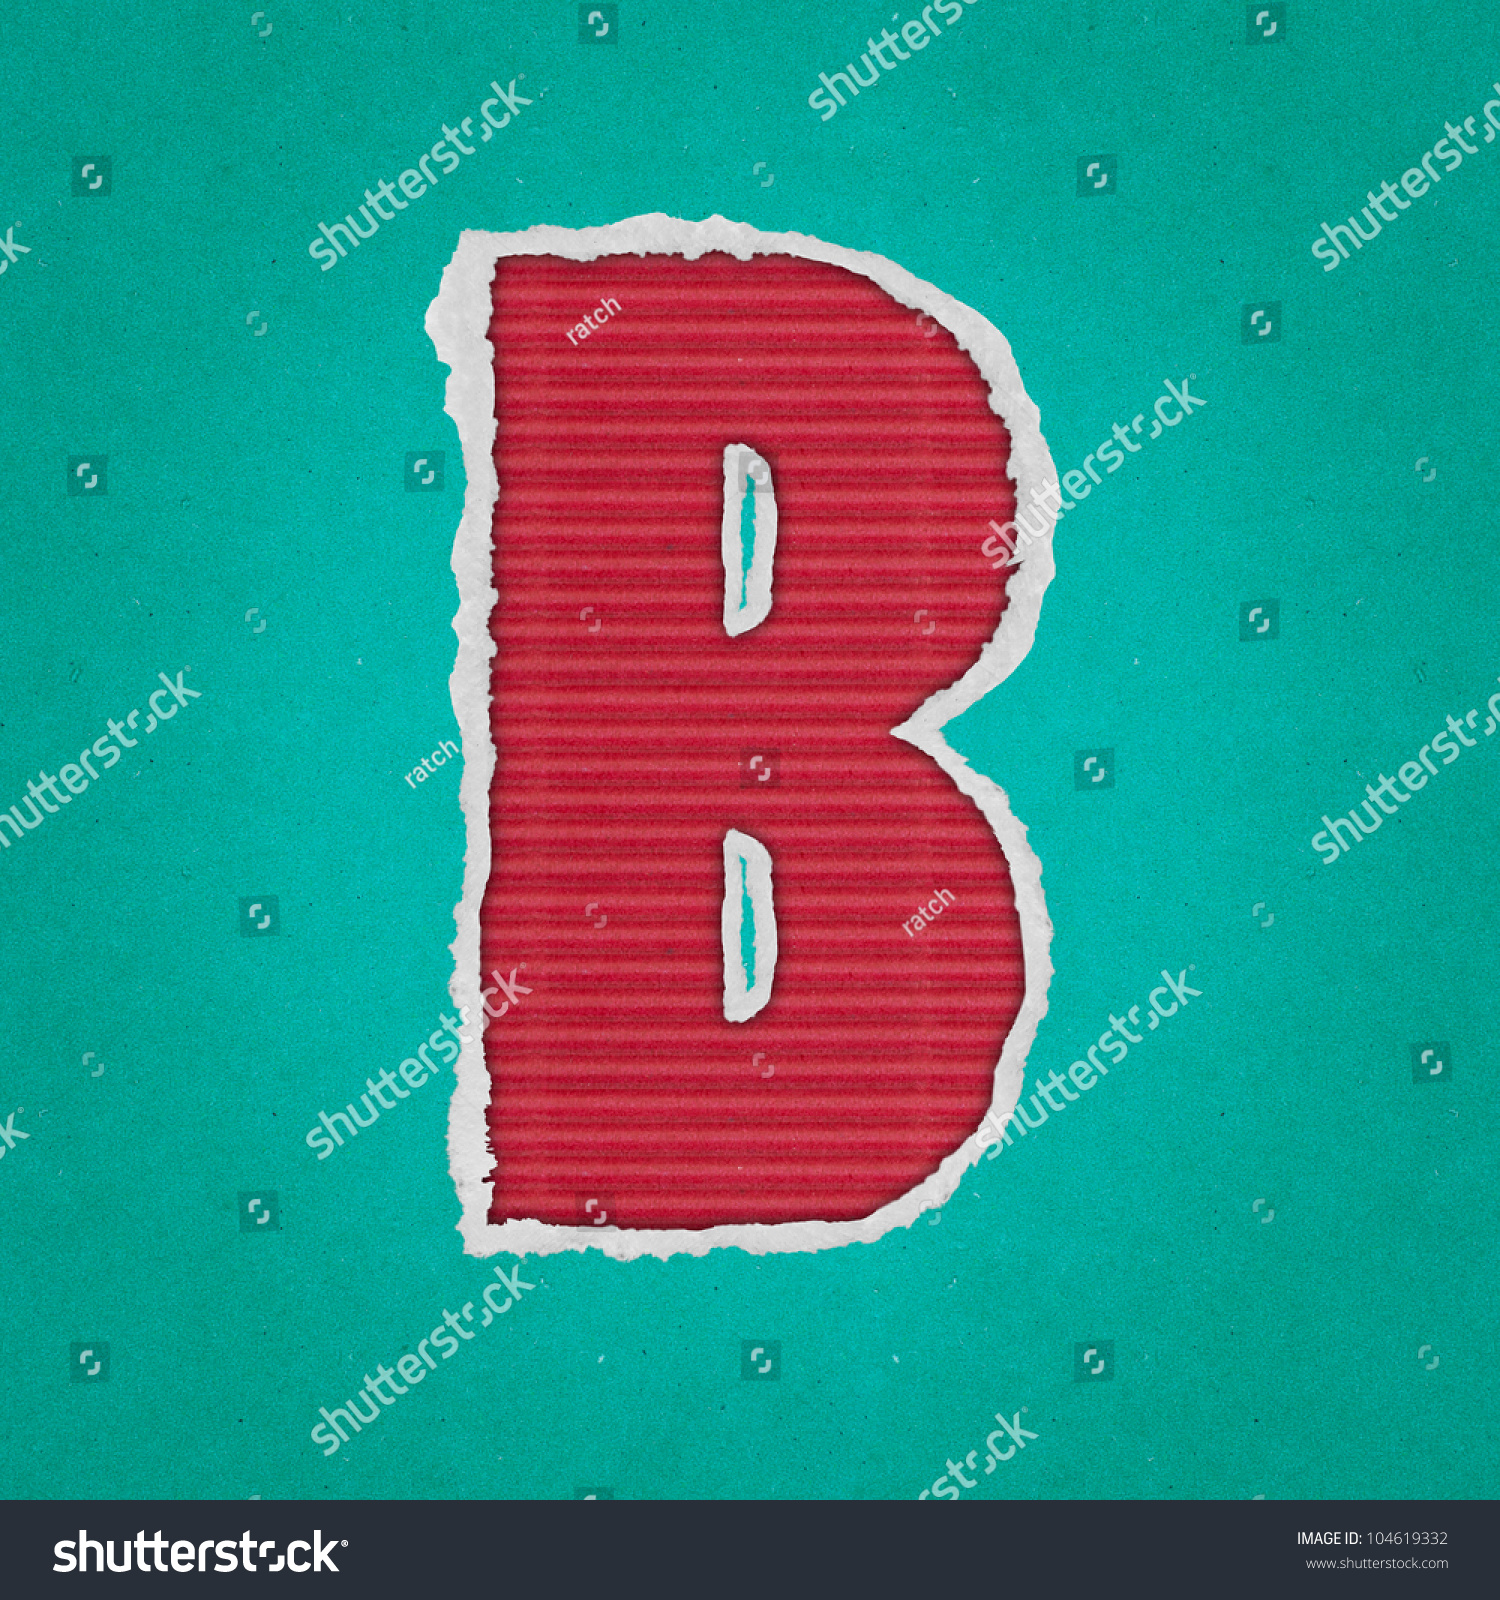 English Alphabet Latters Cut Out On Stock Illustration 104619332 ...